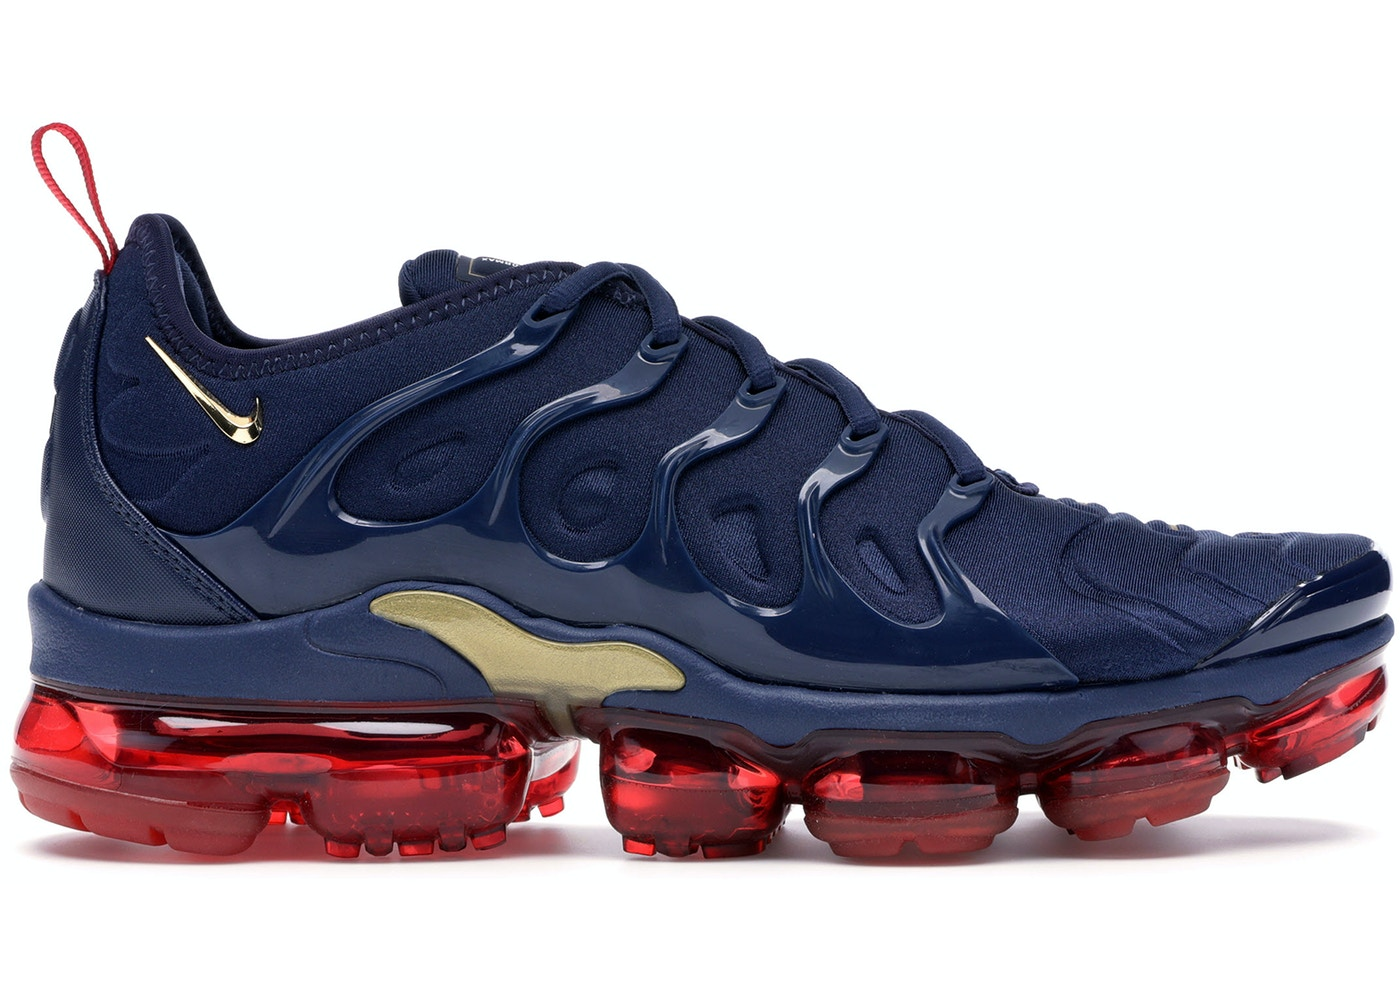 outlet store 7b983 d3401 Buy Nike Air Max VaporMax Shoes   Deadstock Sneakers